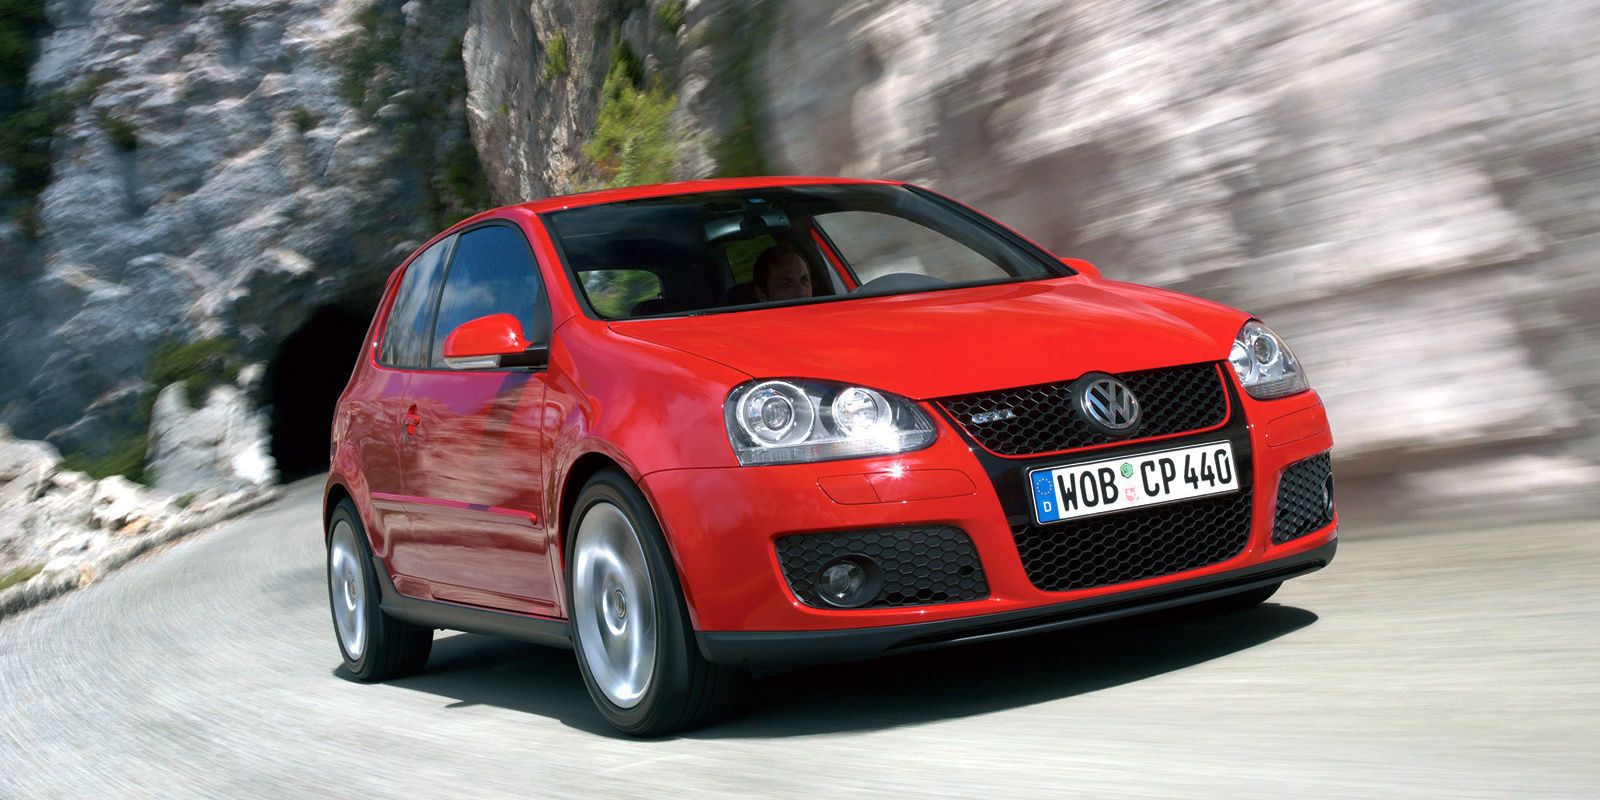 13 Good First Cars That Arenu0027t Oppressively Boring